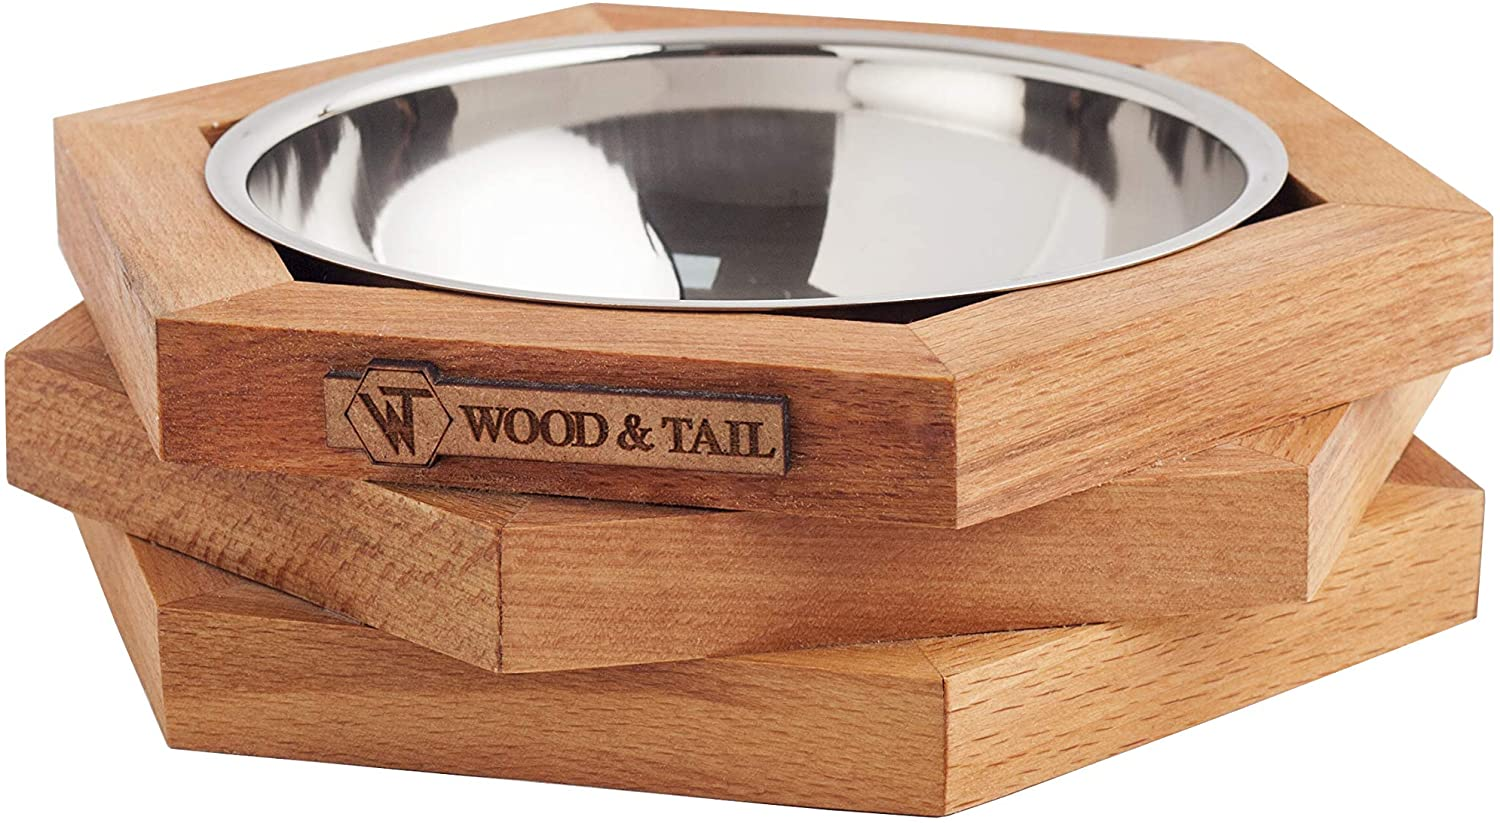 WOOD & TAIL Designer Elevated Dog and Cat Handmade Solid Wood Feeder, Premium Raised Food and Water Stand with Stainless Steel Bowl.Perfect for Small and Medium Pets,Hexx